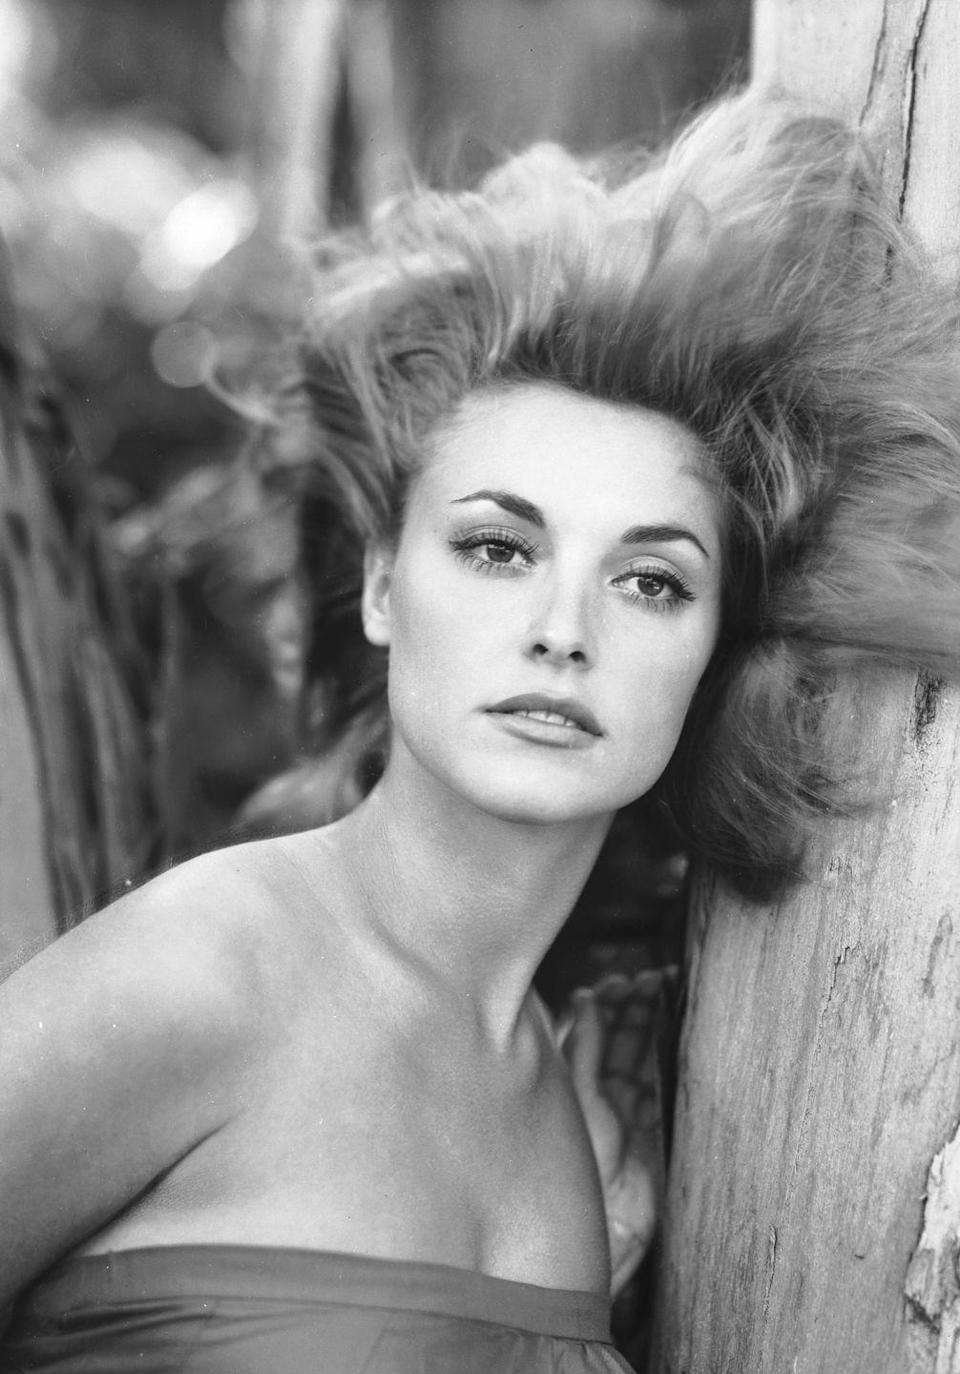 """<p>Tate was beloved by many for her kind nature. """"She was so sweet and so kind, intelligent, and lighter than the air in every way,"""" Tate's sister, Debra Tate told <em><a href=""""https://www.vanityfair.com/hollywood/2019/07/once-upon-a-time-in-hollywood-margot-robbie-sharon-tate"""" rel=""""nofollow noopener"""" target=""""_blank"""" data-ylk=""""slk:Vanity Fair"""" class=""""link rapid-noclick-resp"""">Vanity Fair</a>. </em></p>"""